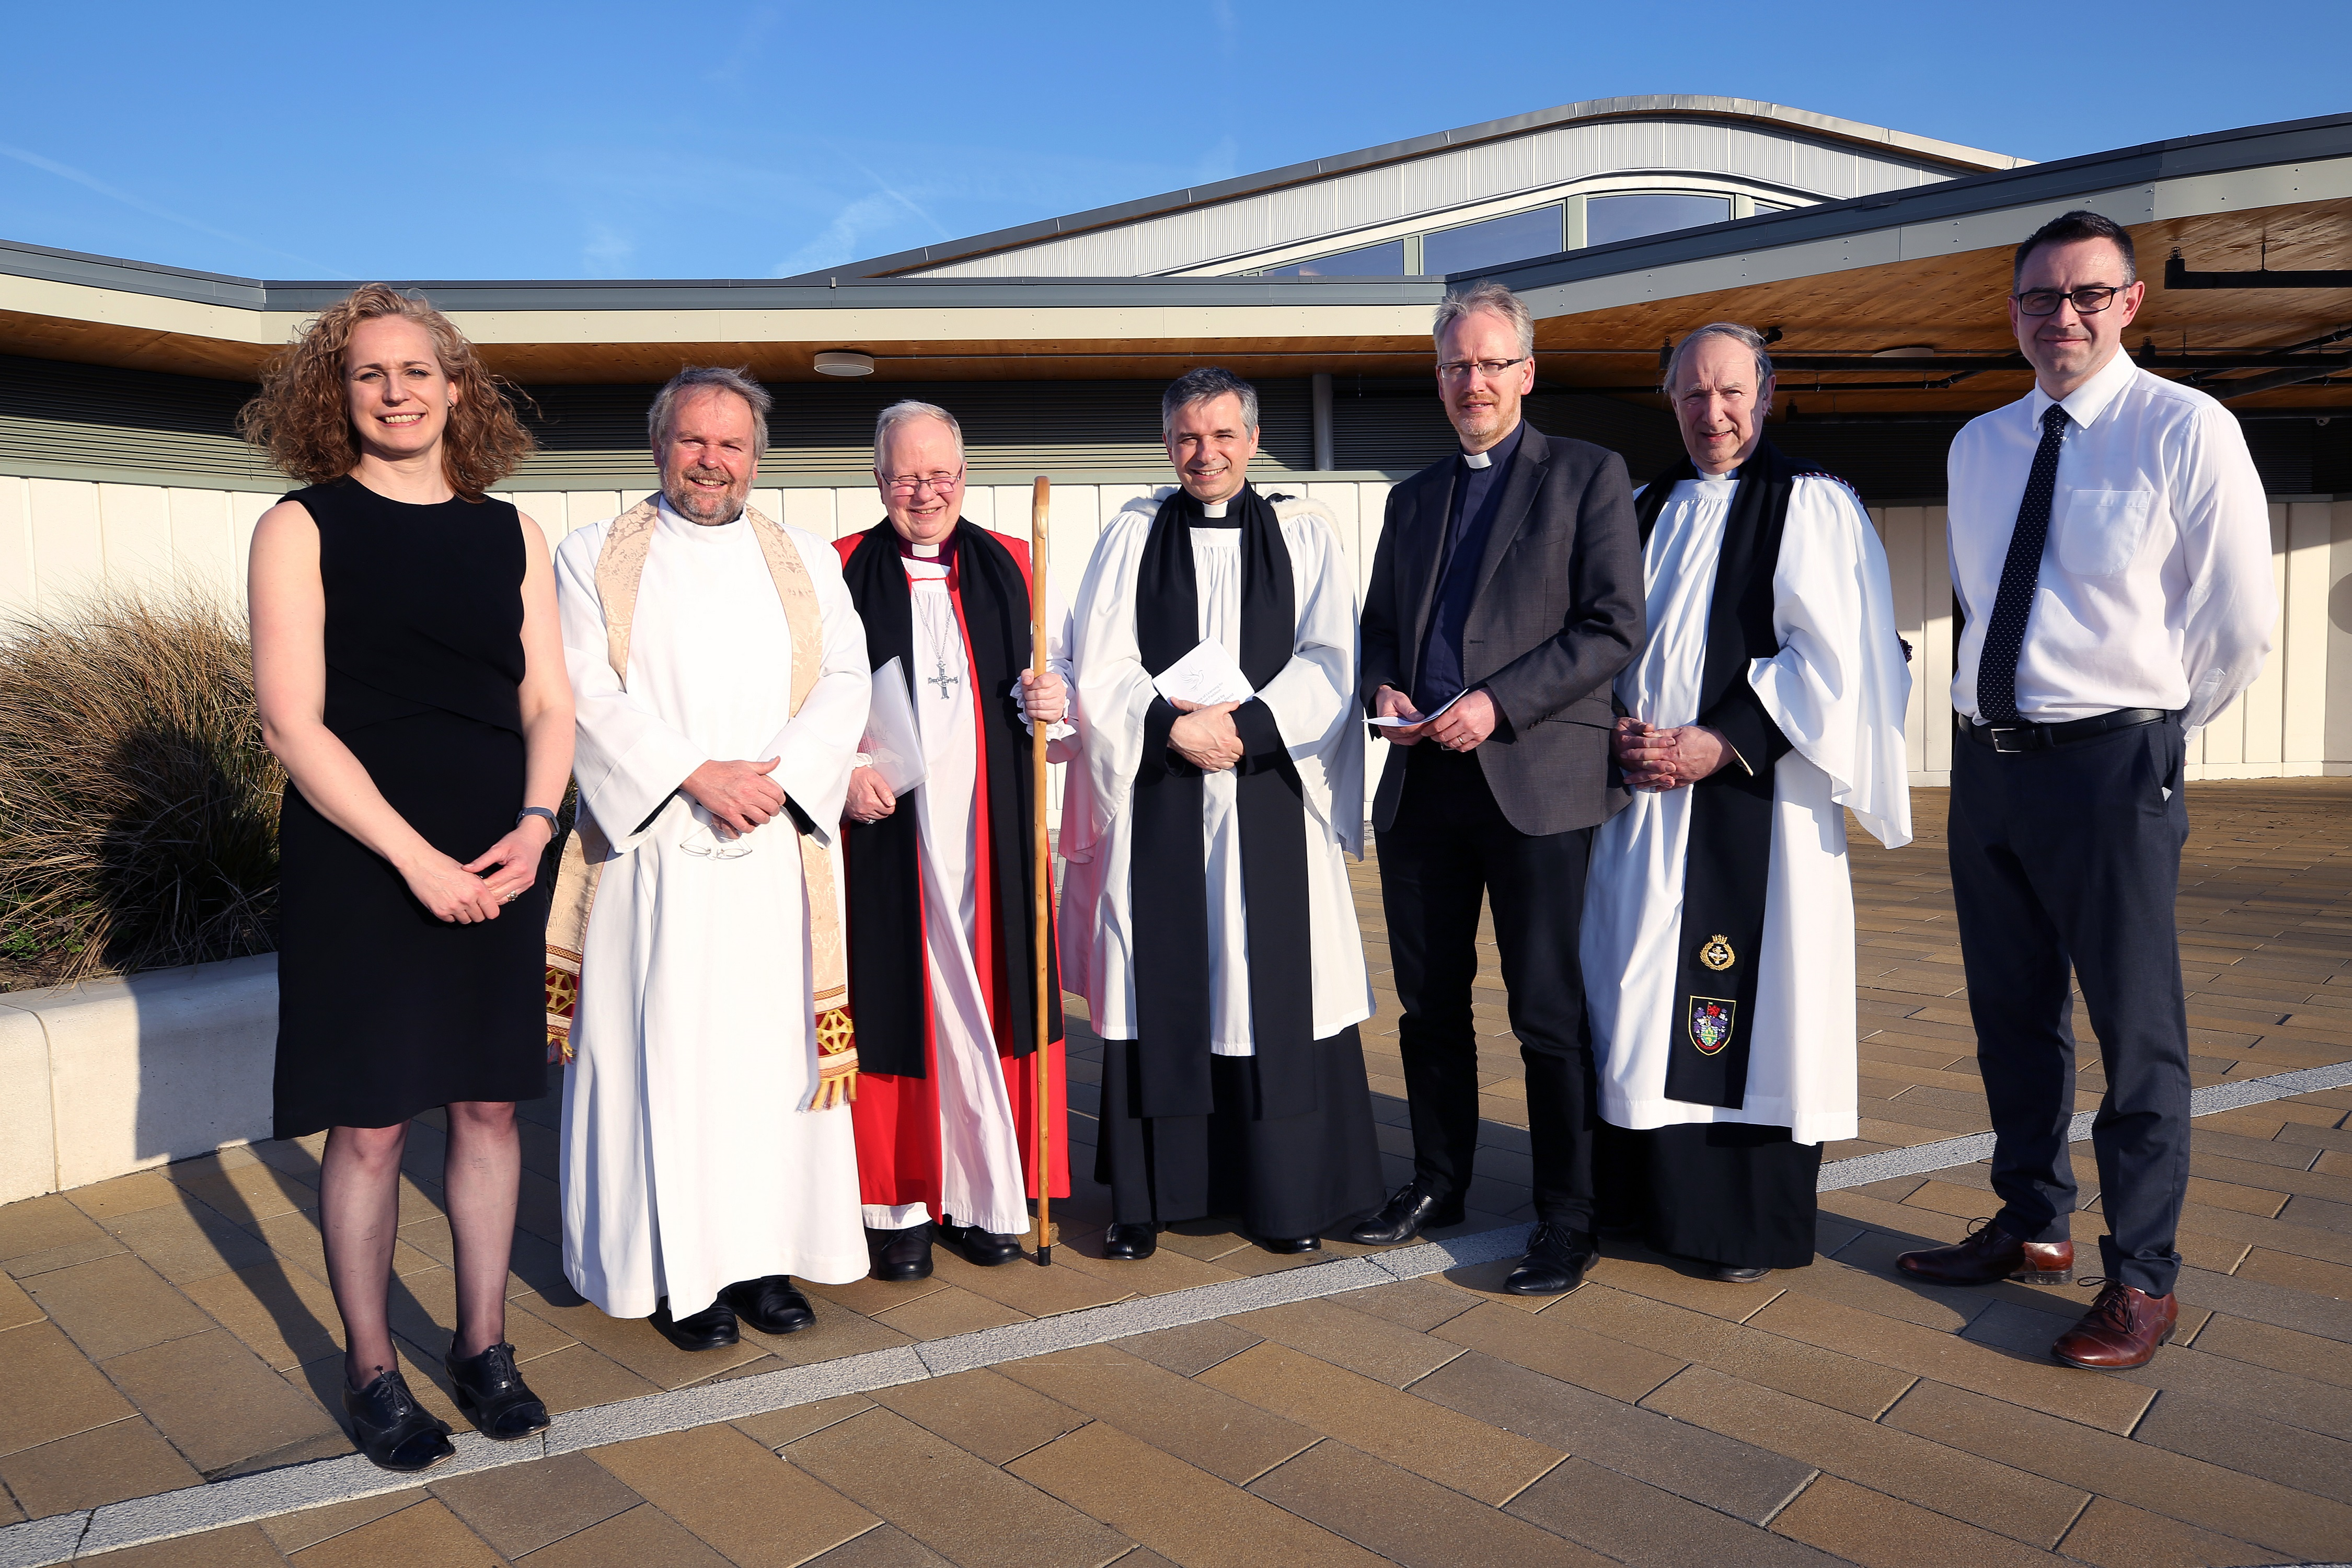 Reverend Rob Paddison outside the Ermine Street Church Academy, with left to right: Rebecca Britton, Urban&Civic, The Venerable Hugh McCurdy, Archdeacon of Huntingdon and Wisbech, Right Reverend David Thomson, Bishop of Huntingdon, Revd Rob Paddison, Pete (Click to enlarge)